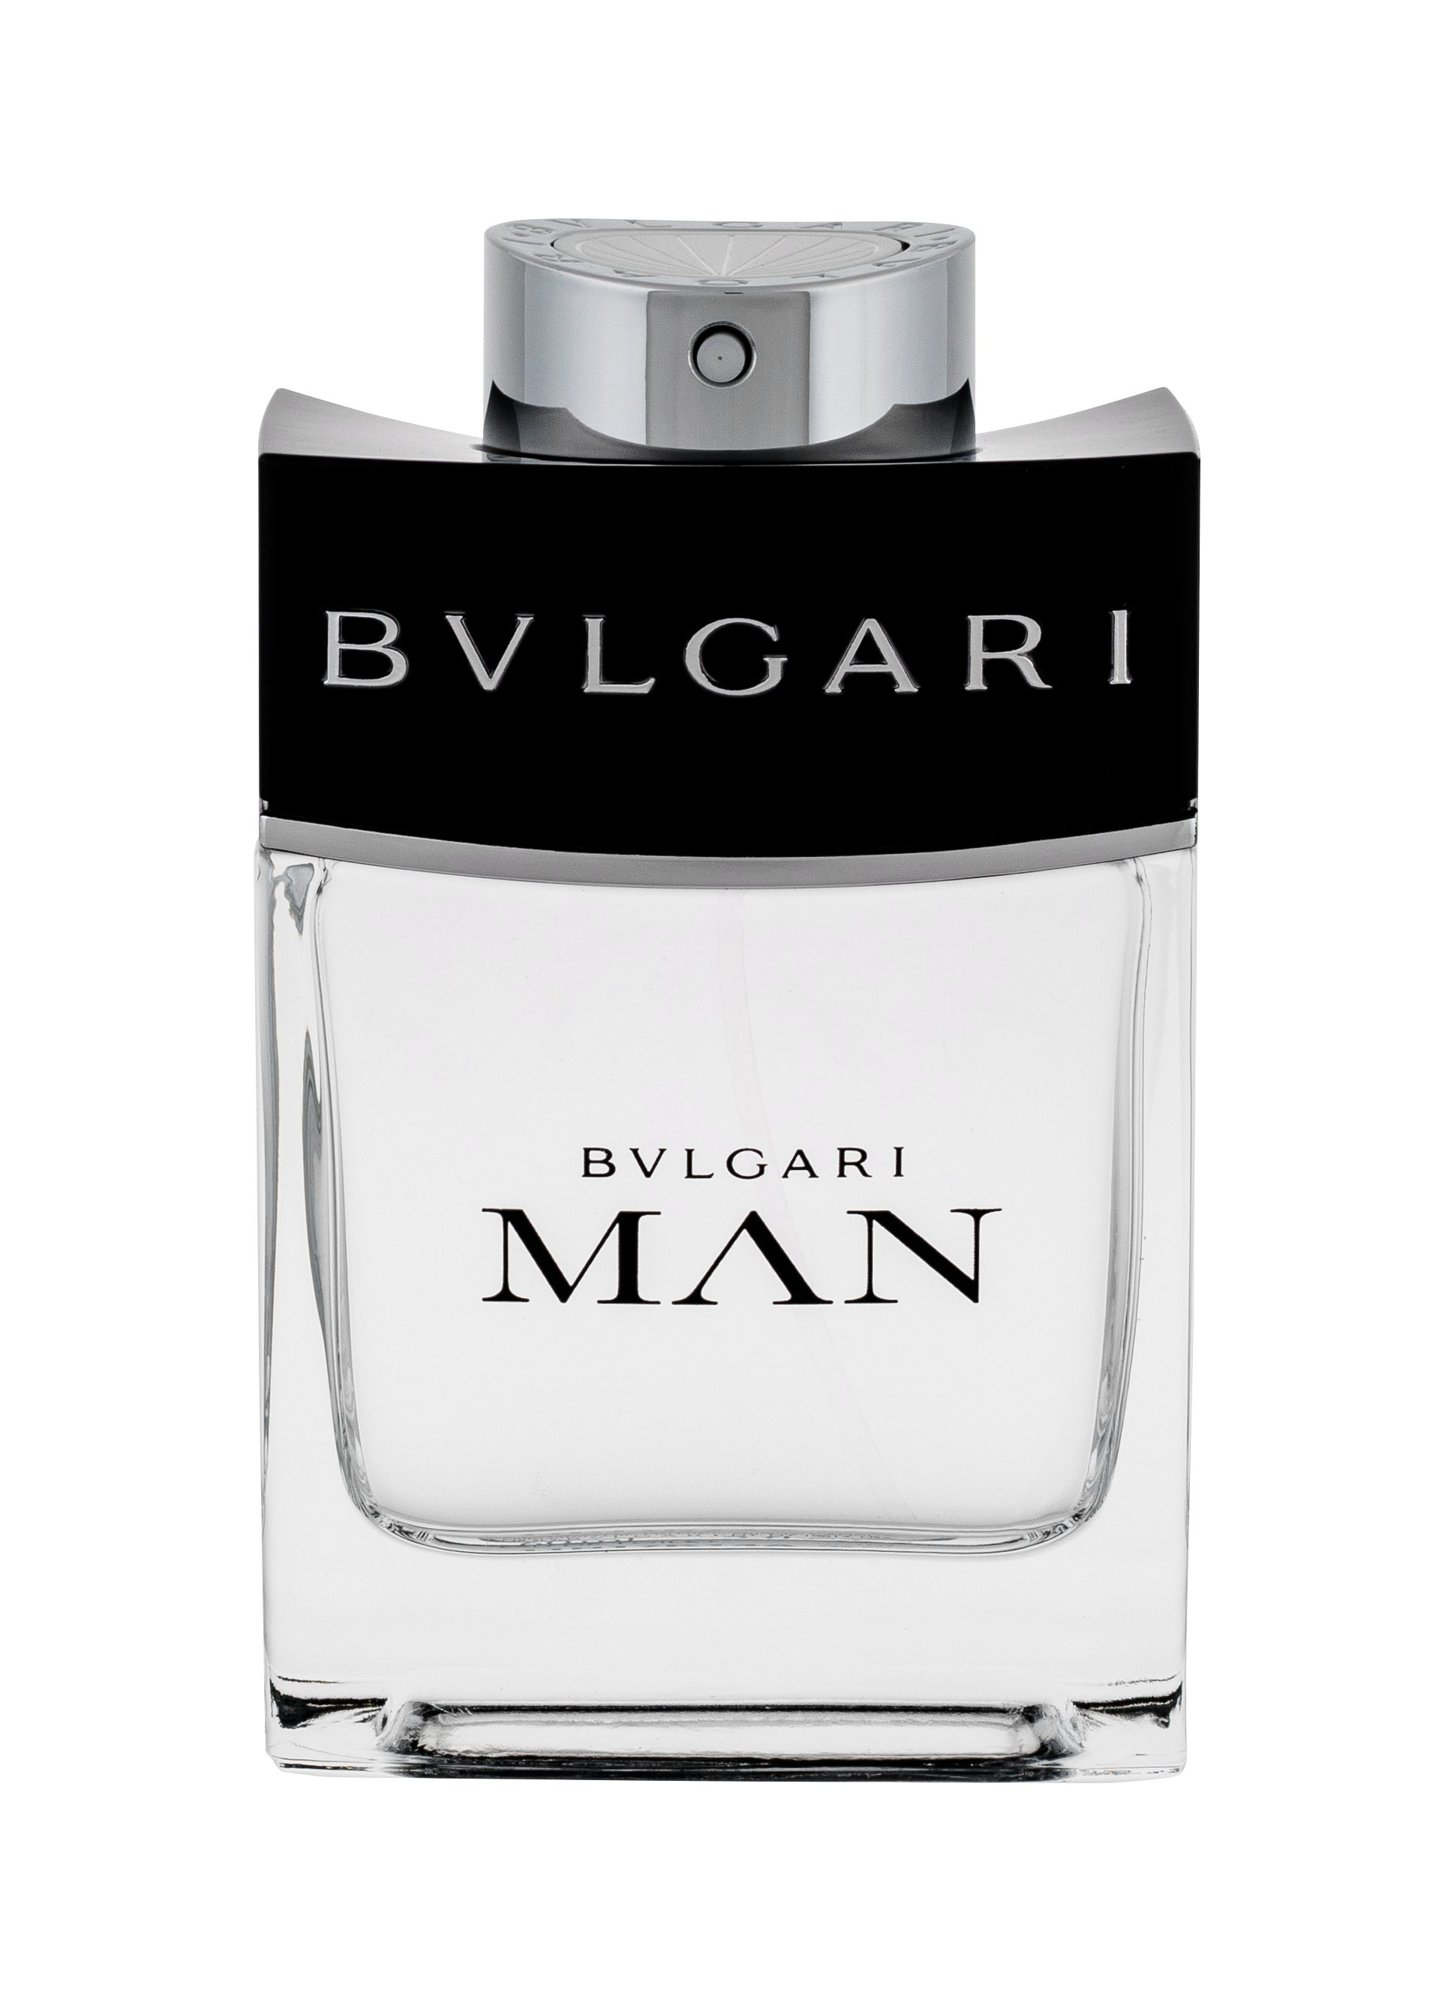 Bvlgari Bvlgari Man EDT 60ml